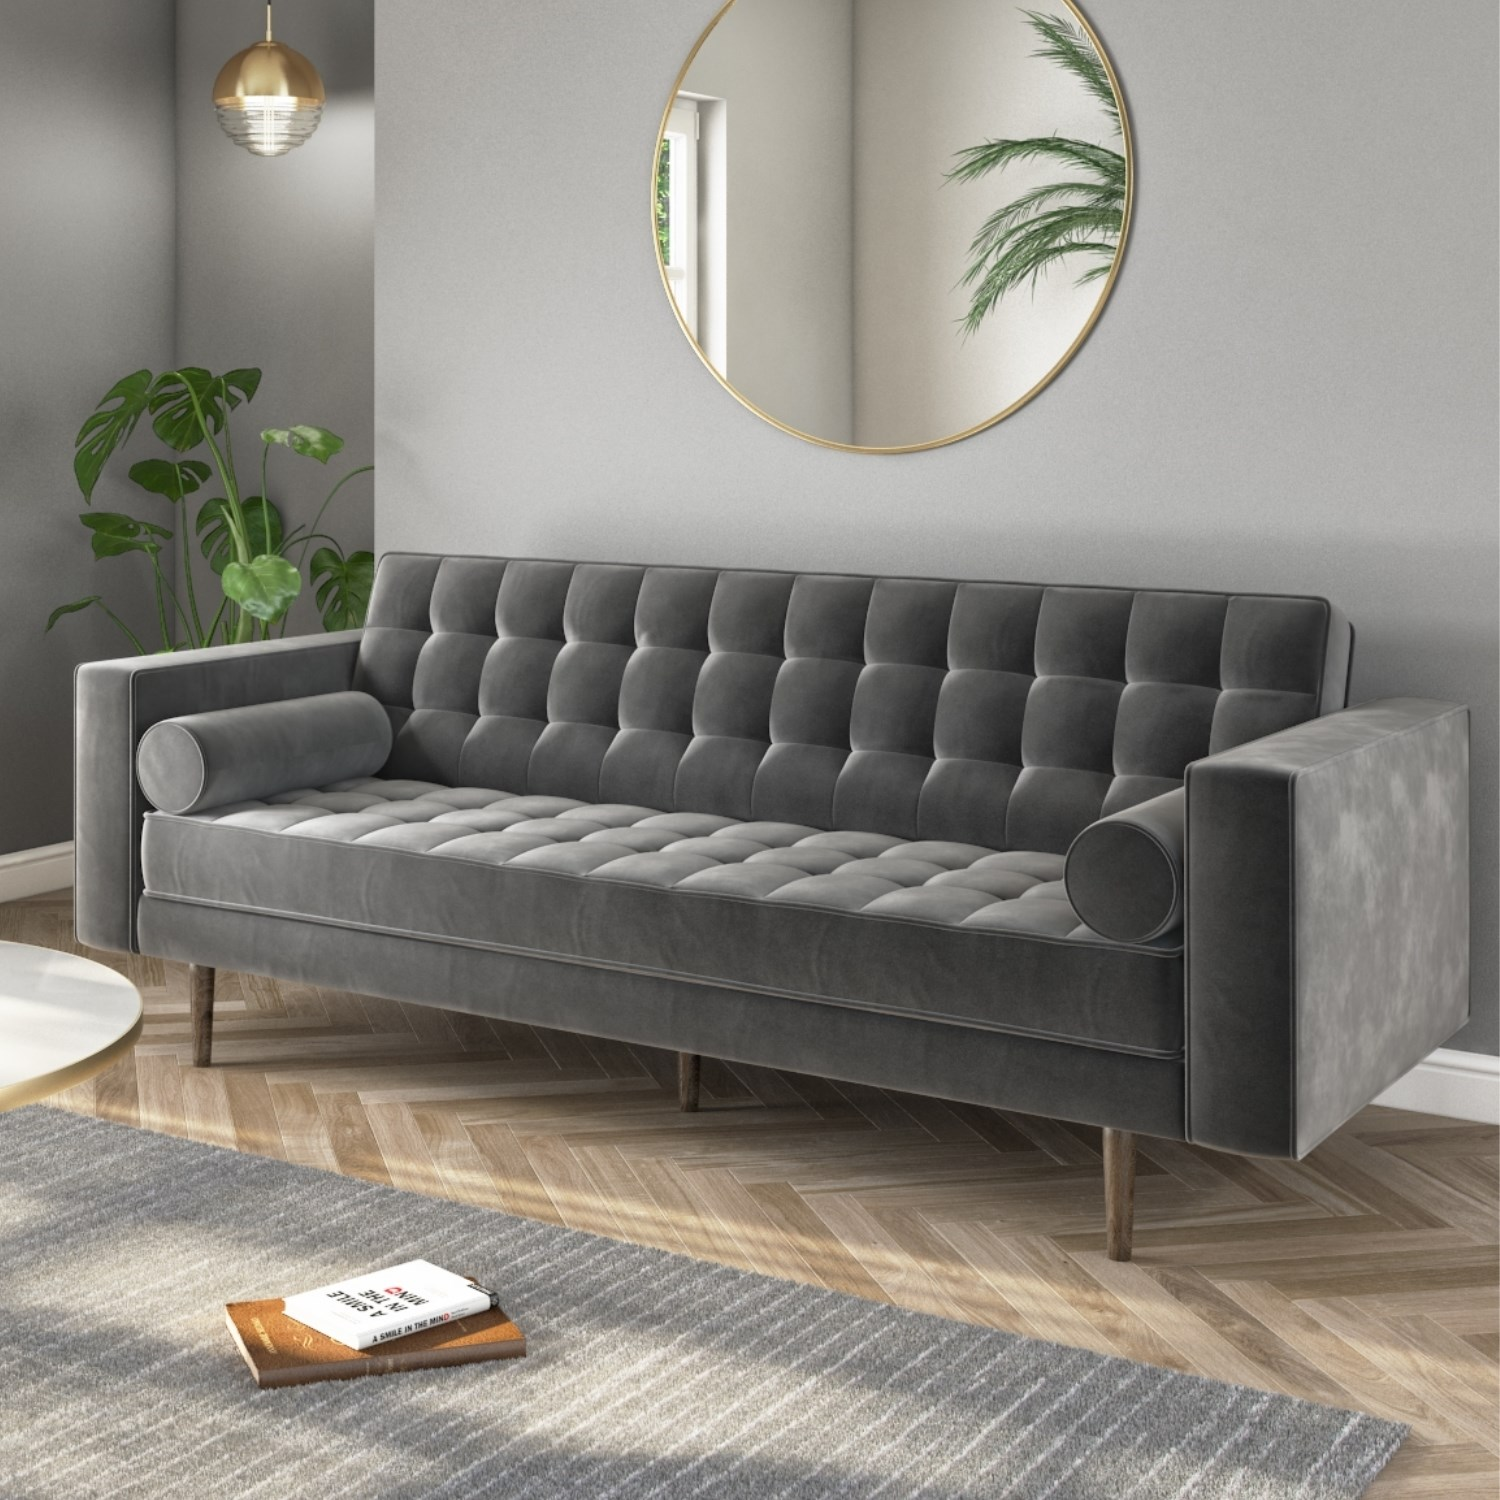 3 Seater Sofa in Grey Velvet with Buttoned Back & Bolster Cushions - Elba